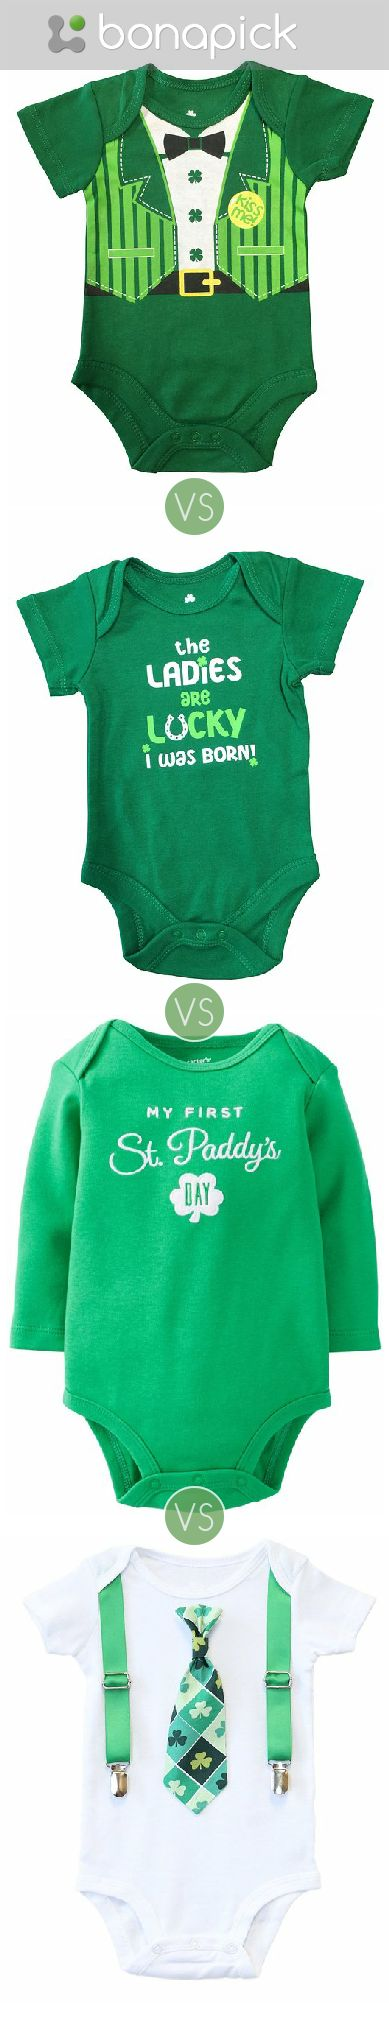 St Patricks Day outfit for a Baby Boy. Green kids fashion, clover tie, bodysuit, tuxedo, kiss me